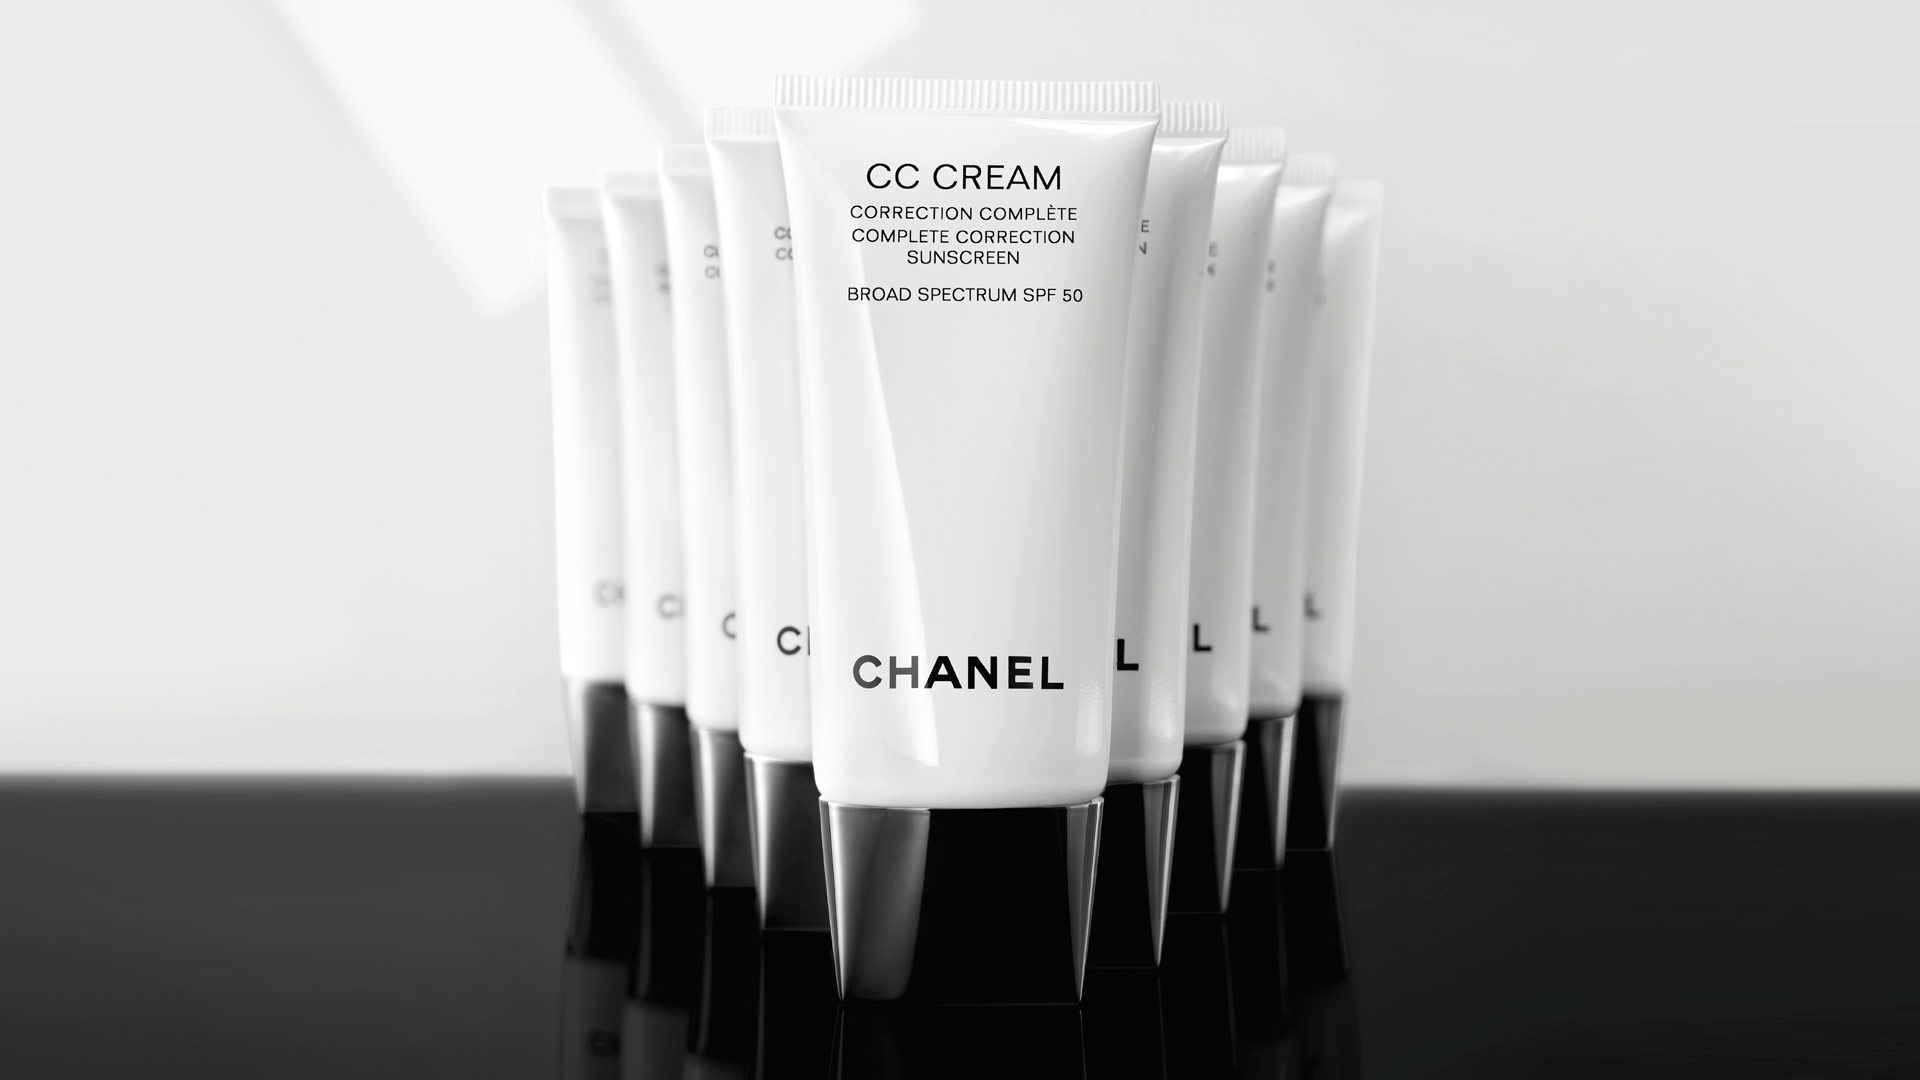 9db1df5803 Chanel's New CC Cream Review - Complete Correction Sunscreen Broad ...